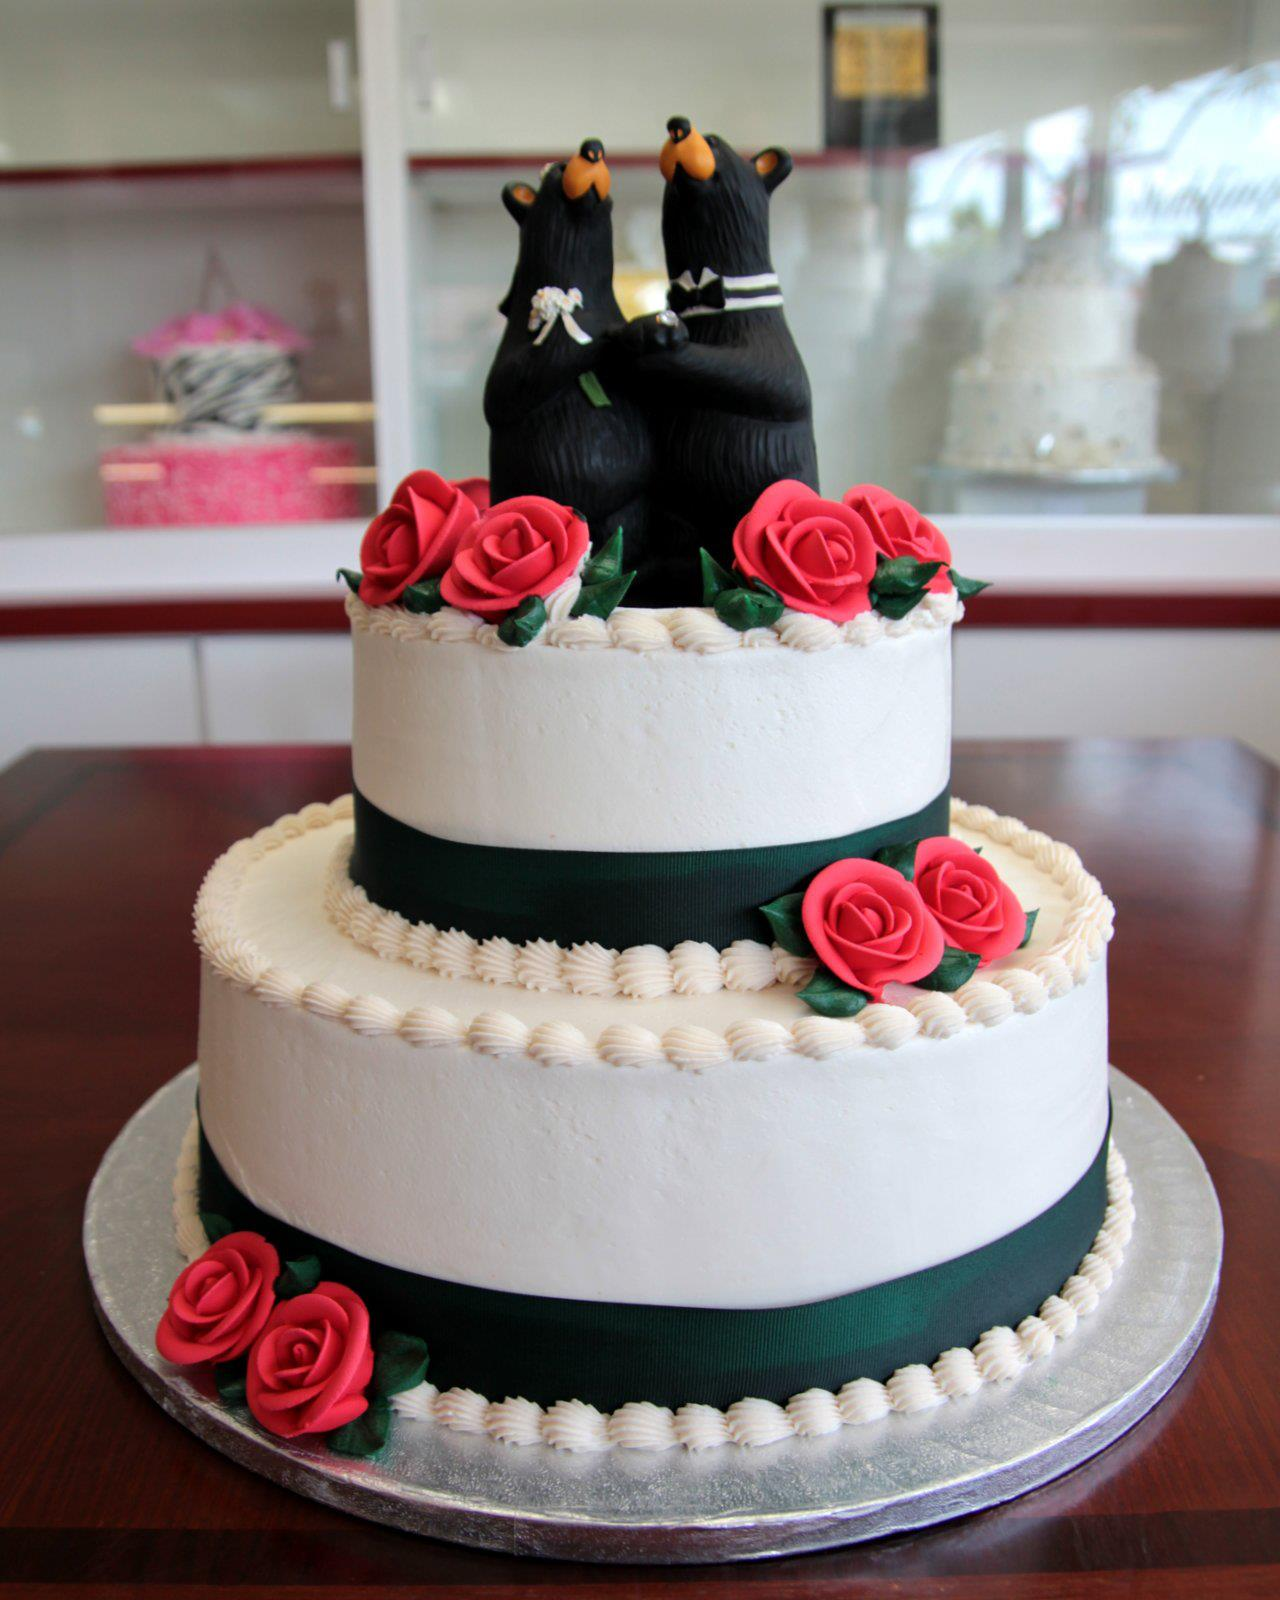 Cake Baker Gay Wedding Facts